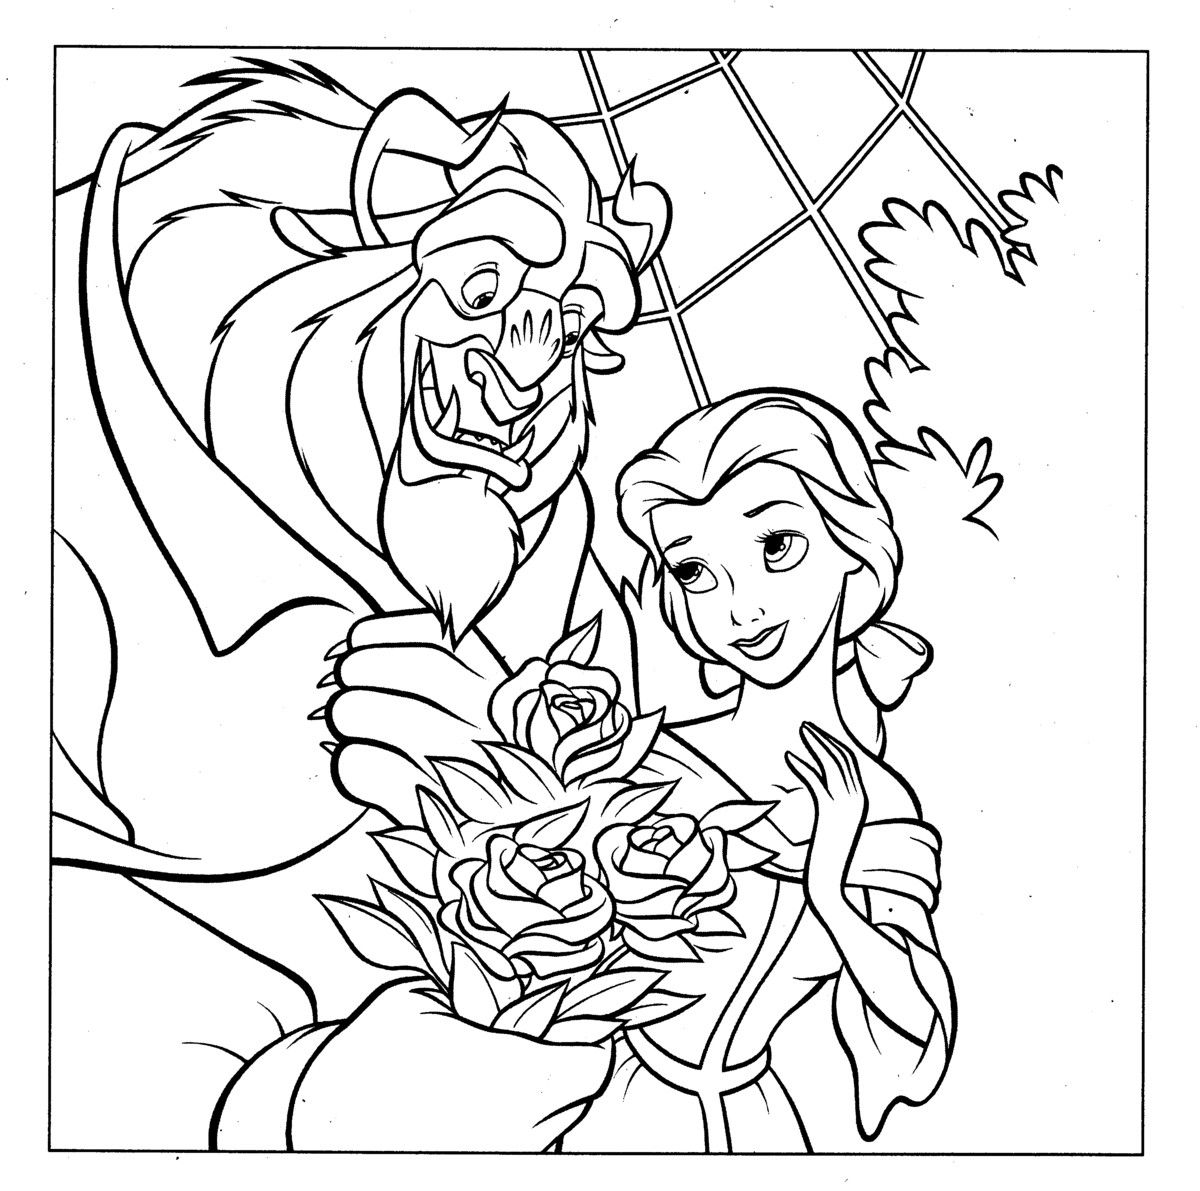 Beauty and the beast | fun crafts | Pinterest